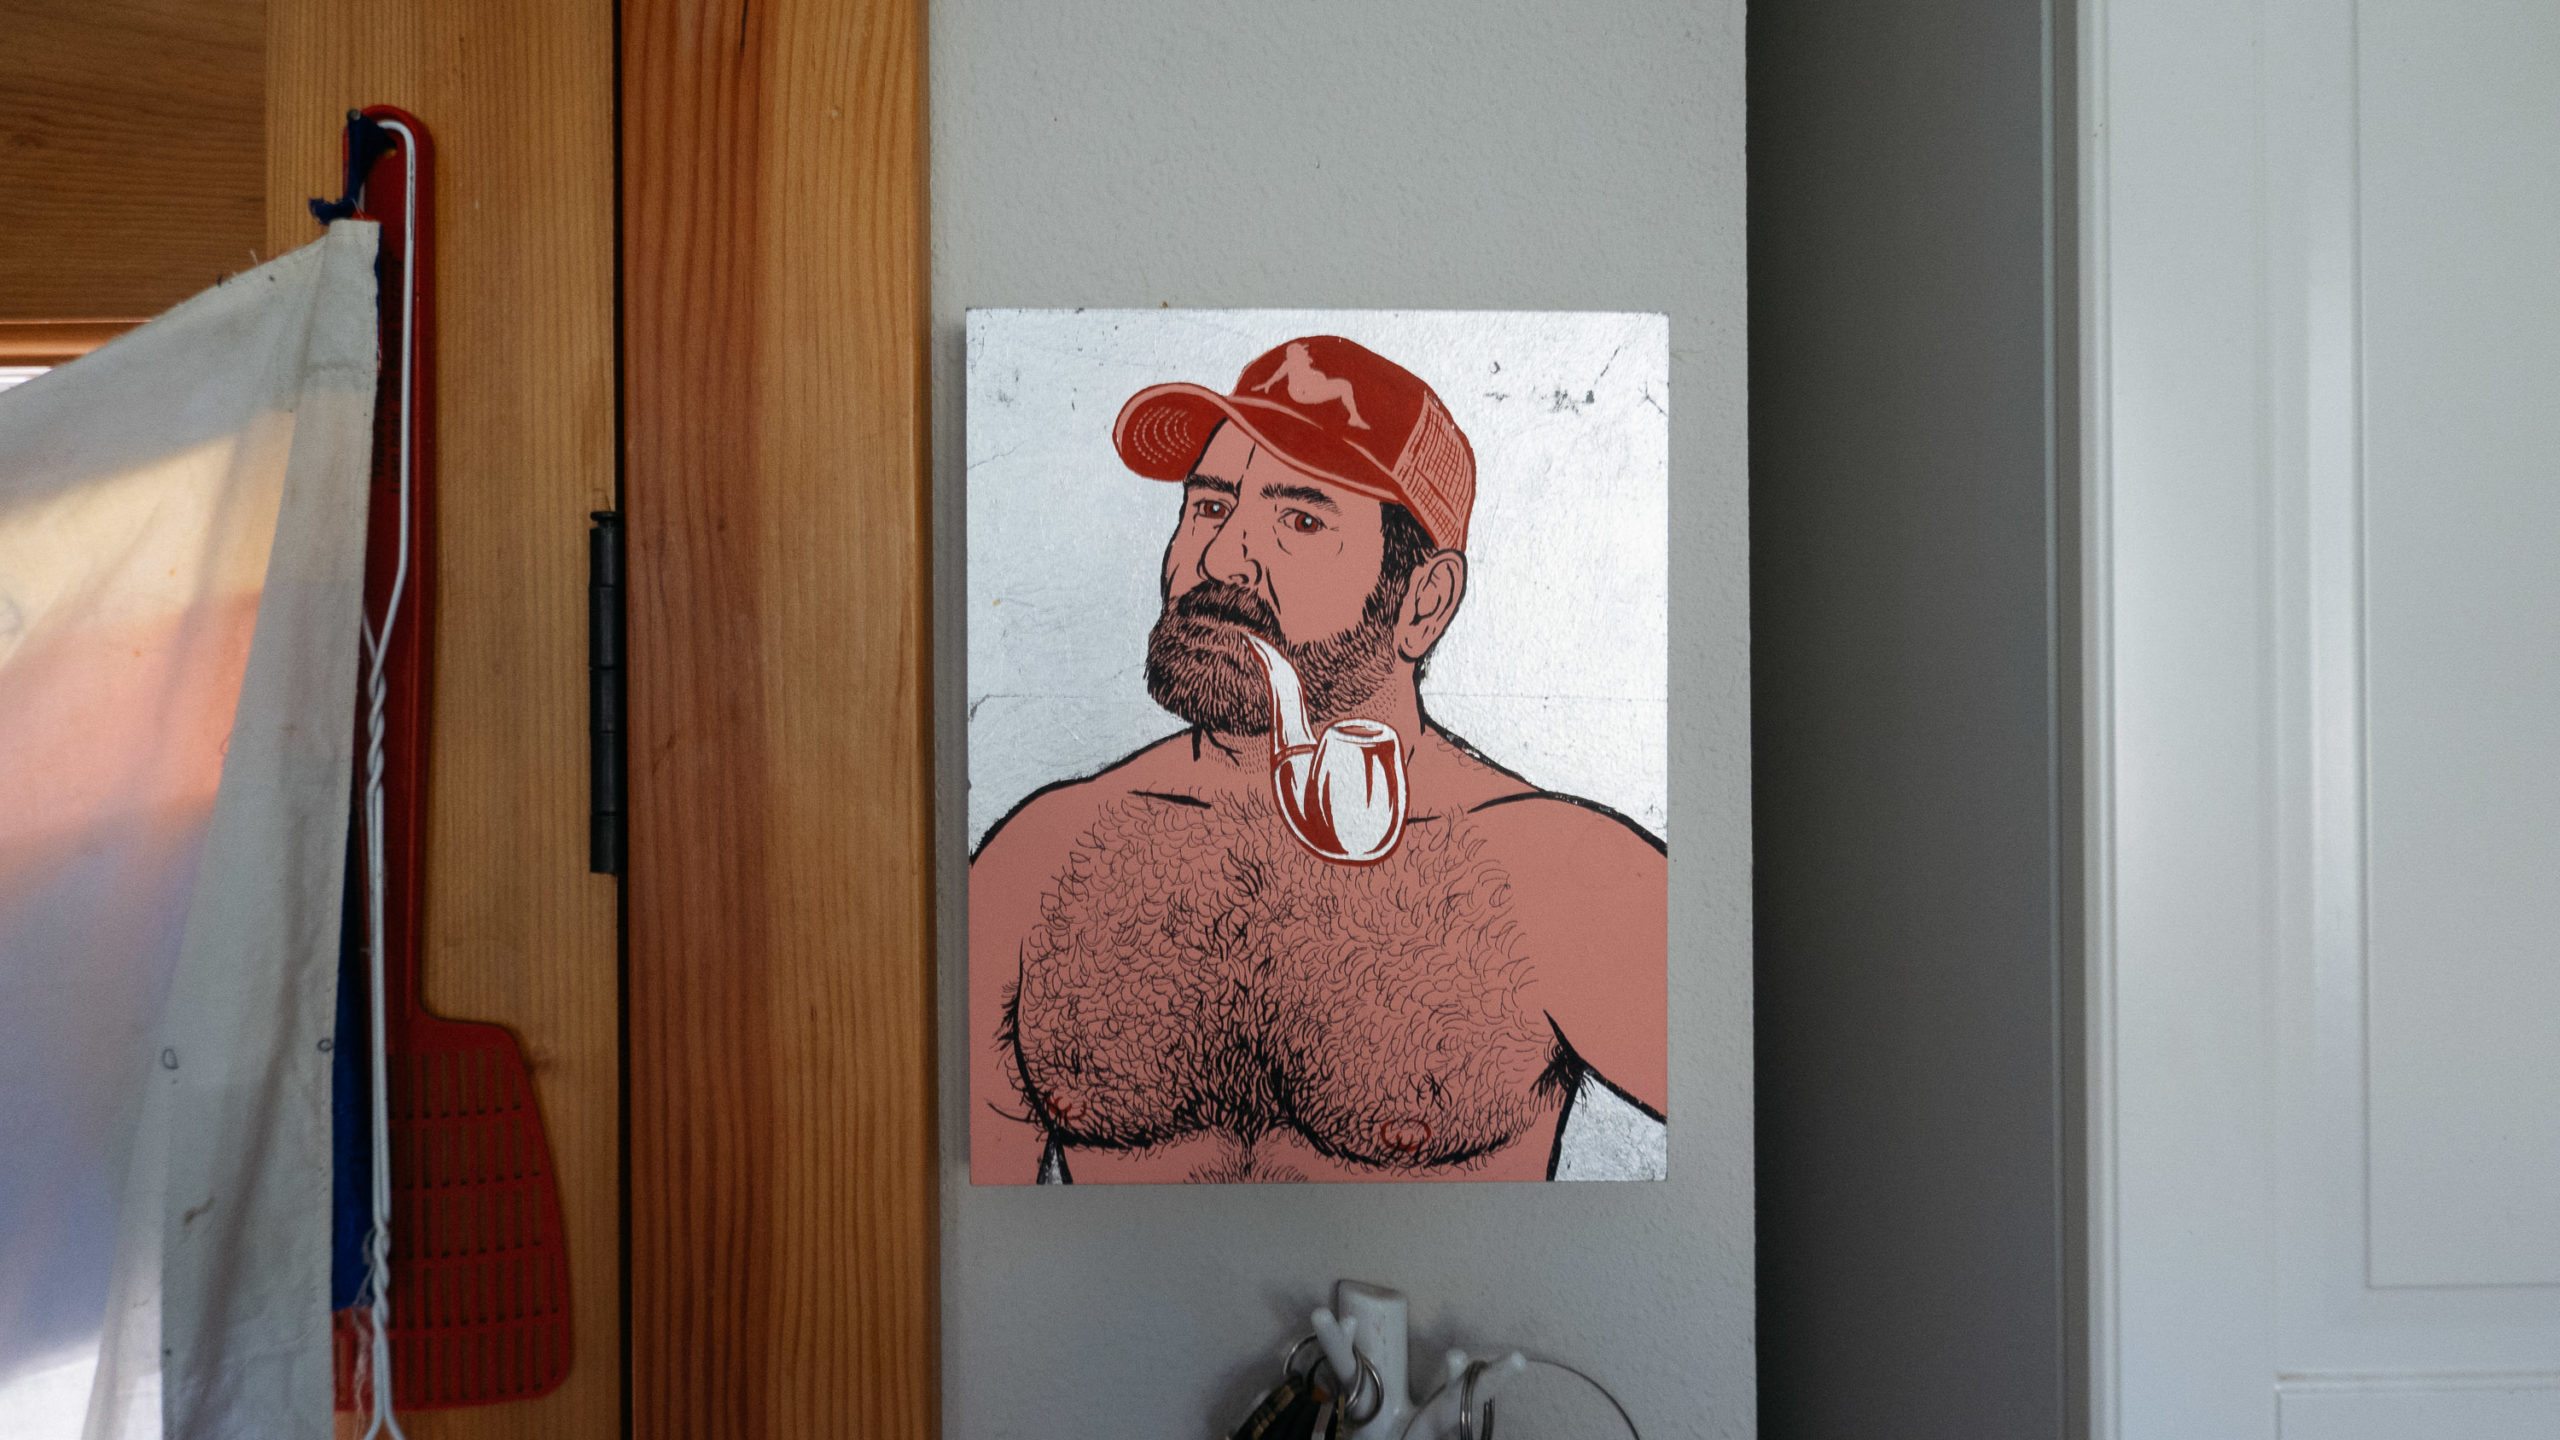 A portrait of shirtless man with a pipe and ballcap